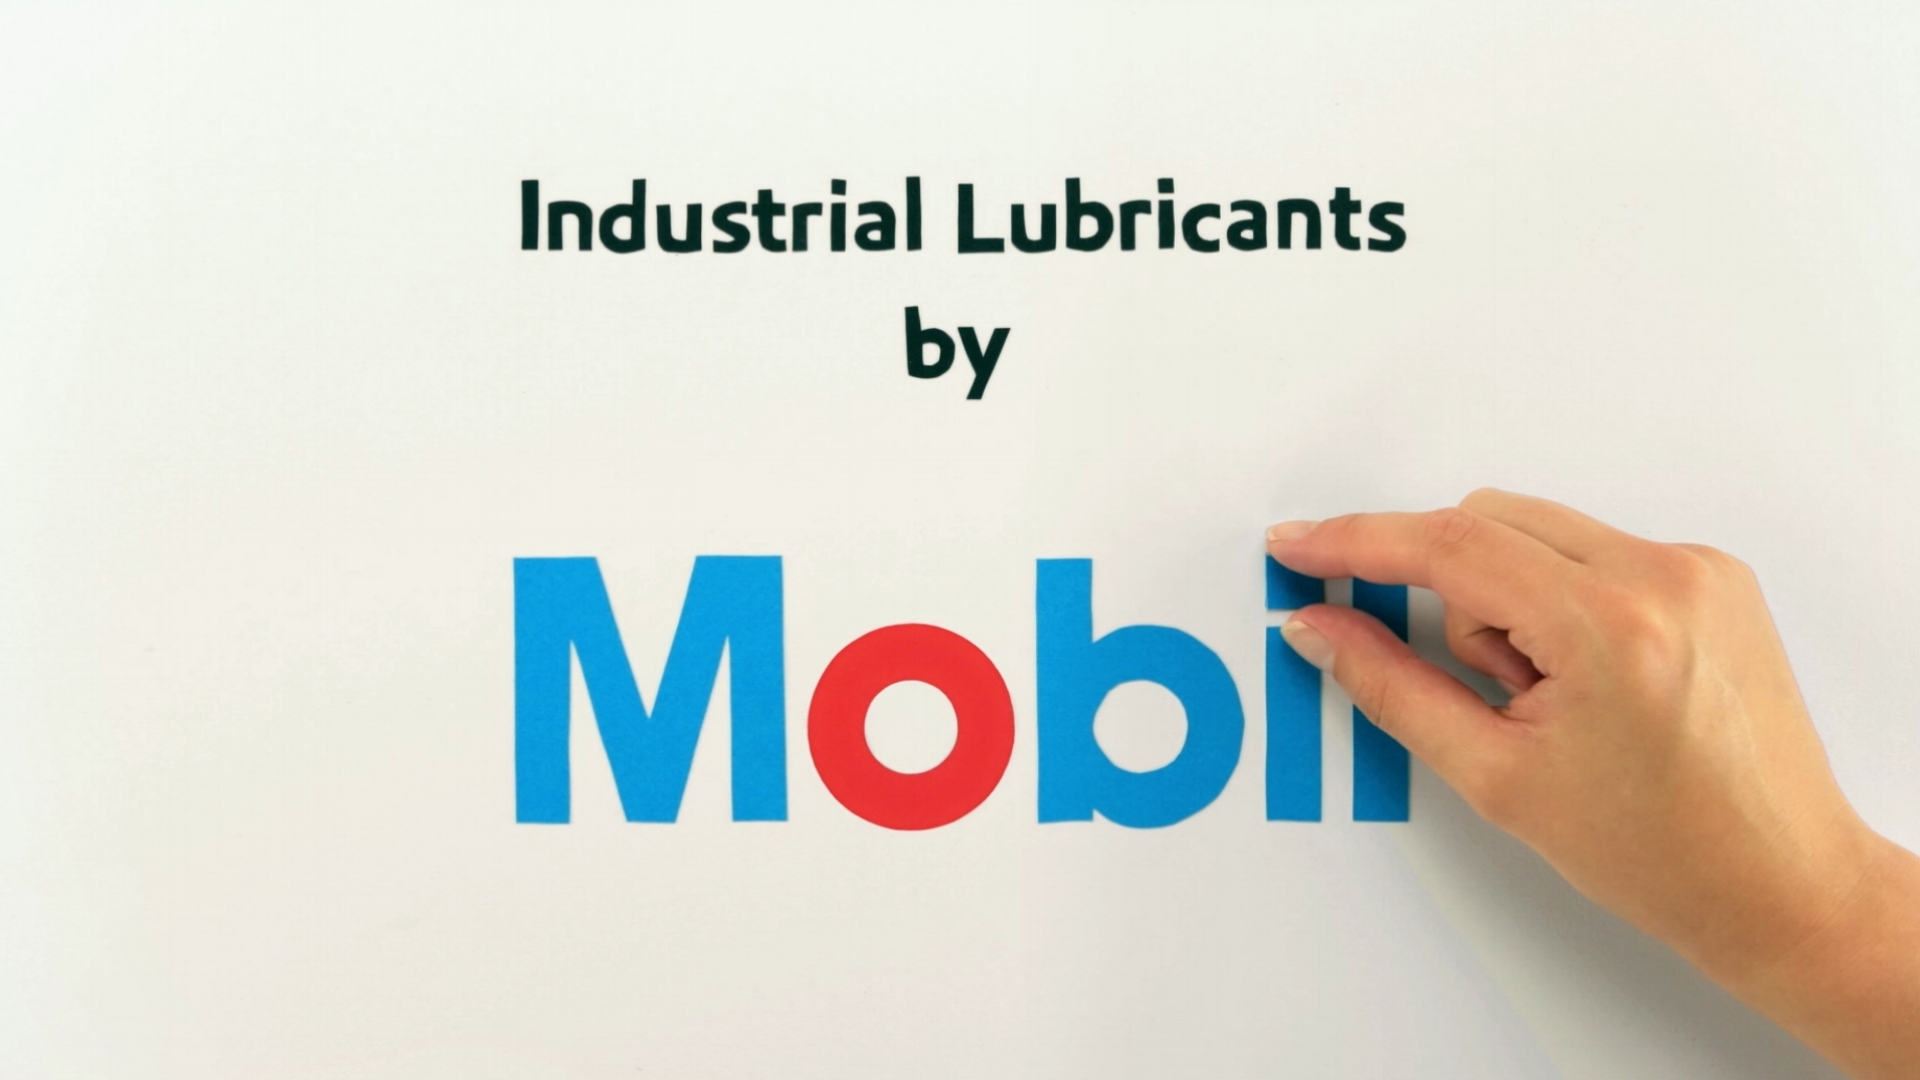 EXXON-MOBIL--THE-DOT---Young-Illustration-&-Animation-Studio-Manchester-2D,3D,-STOP-MOTION,-PAPER-CRAFT,-CLAYMATION, logo, hand - Animation .jpg